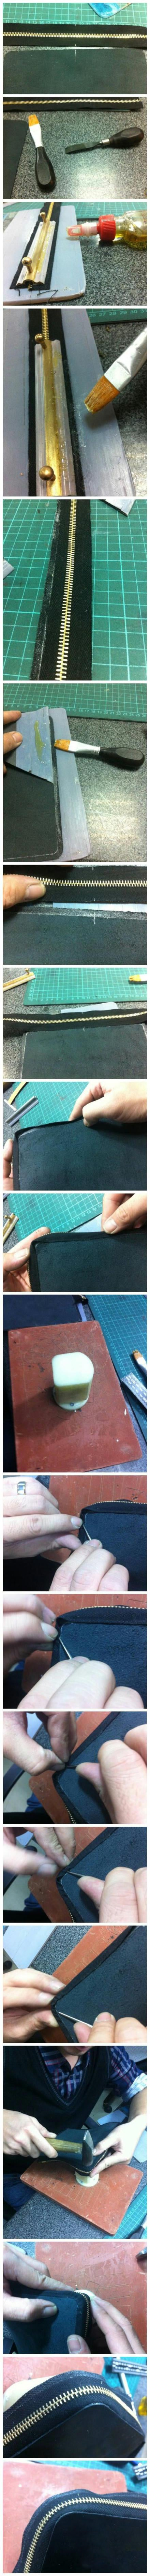 Glue Zipper on Lining, This Is a Very Skillful Work by Hand, Here Let Me Show You a Long Picture for Teaching How to Glue Zipper.